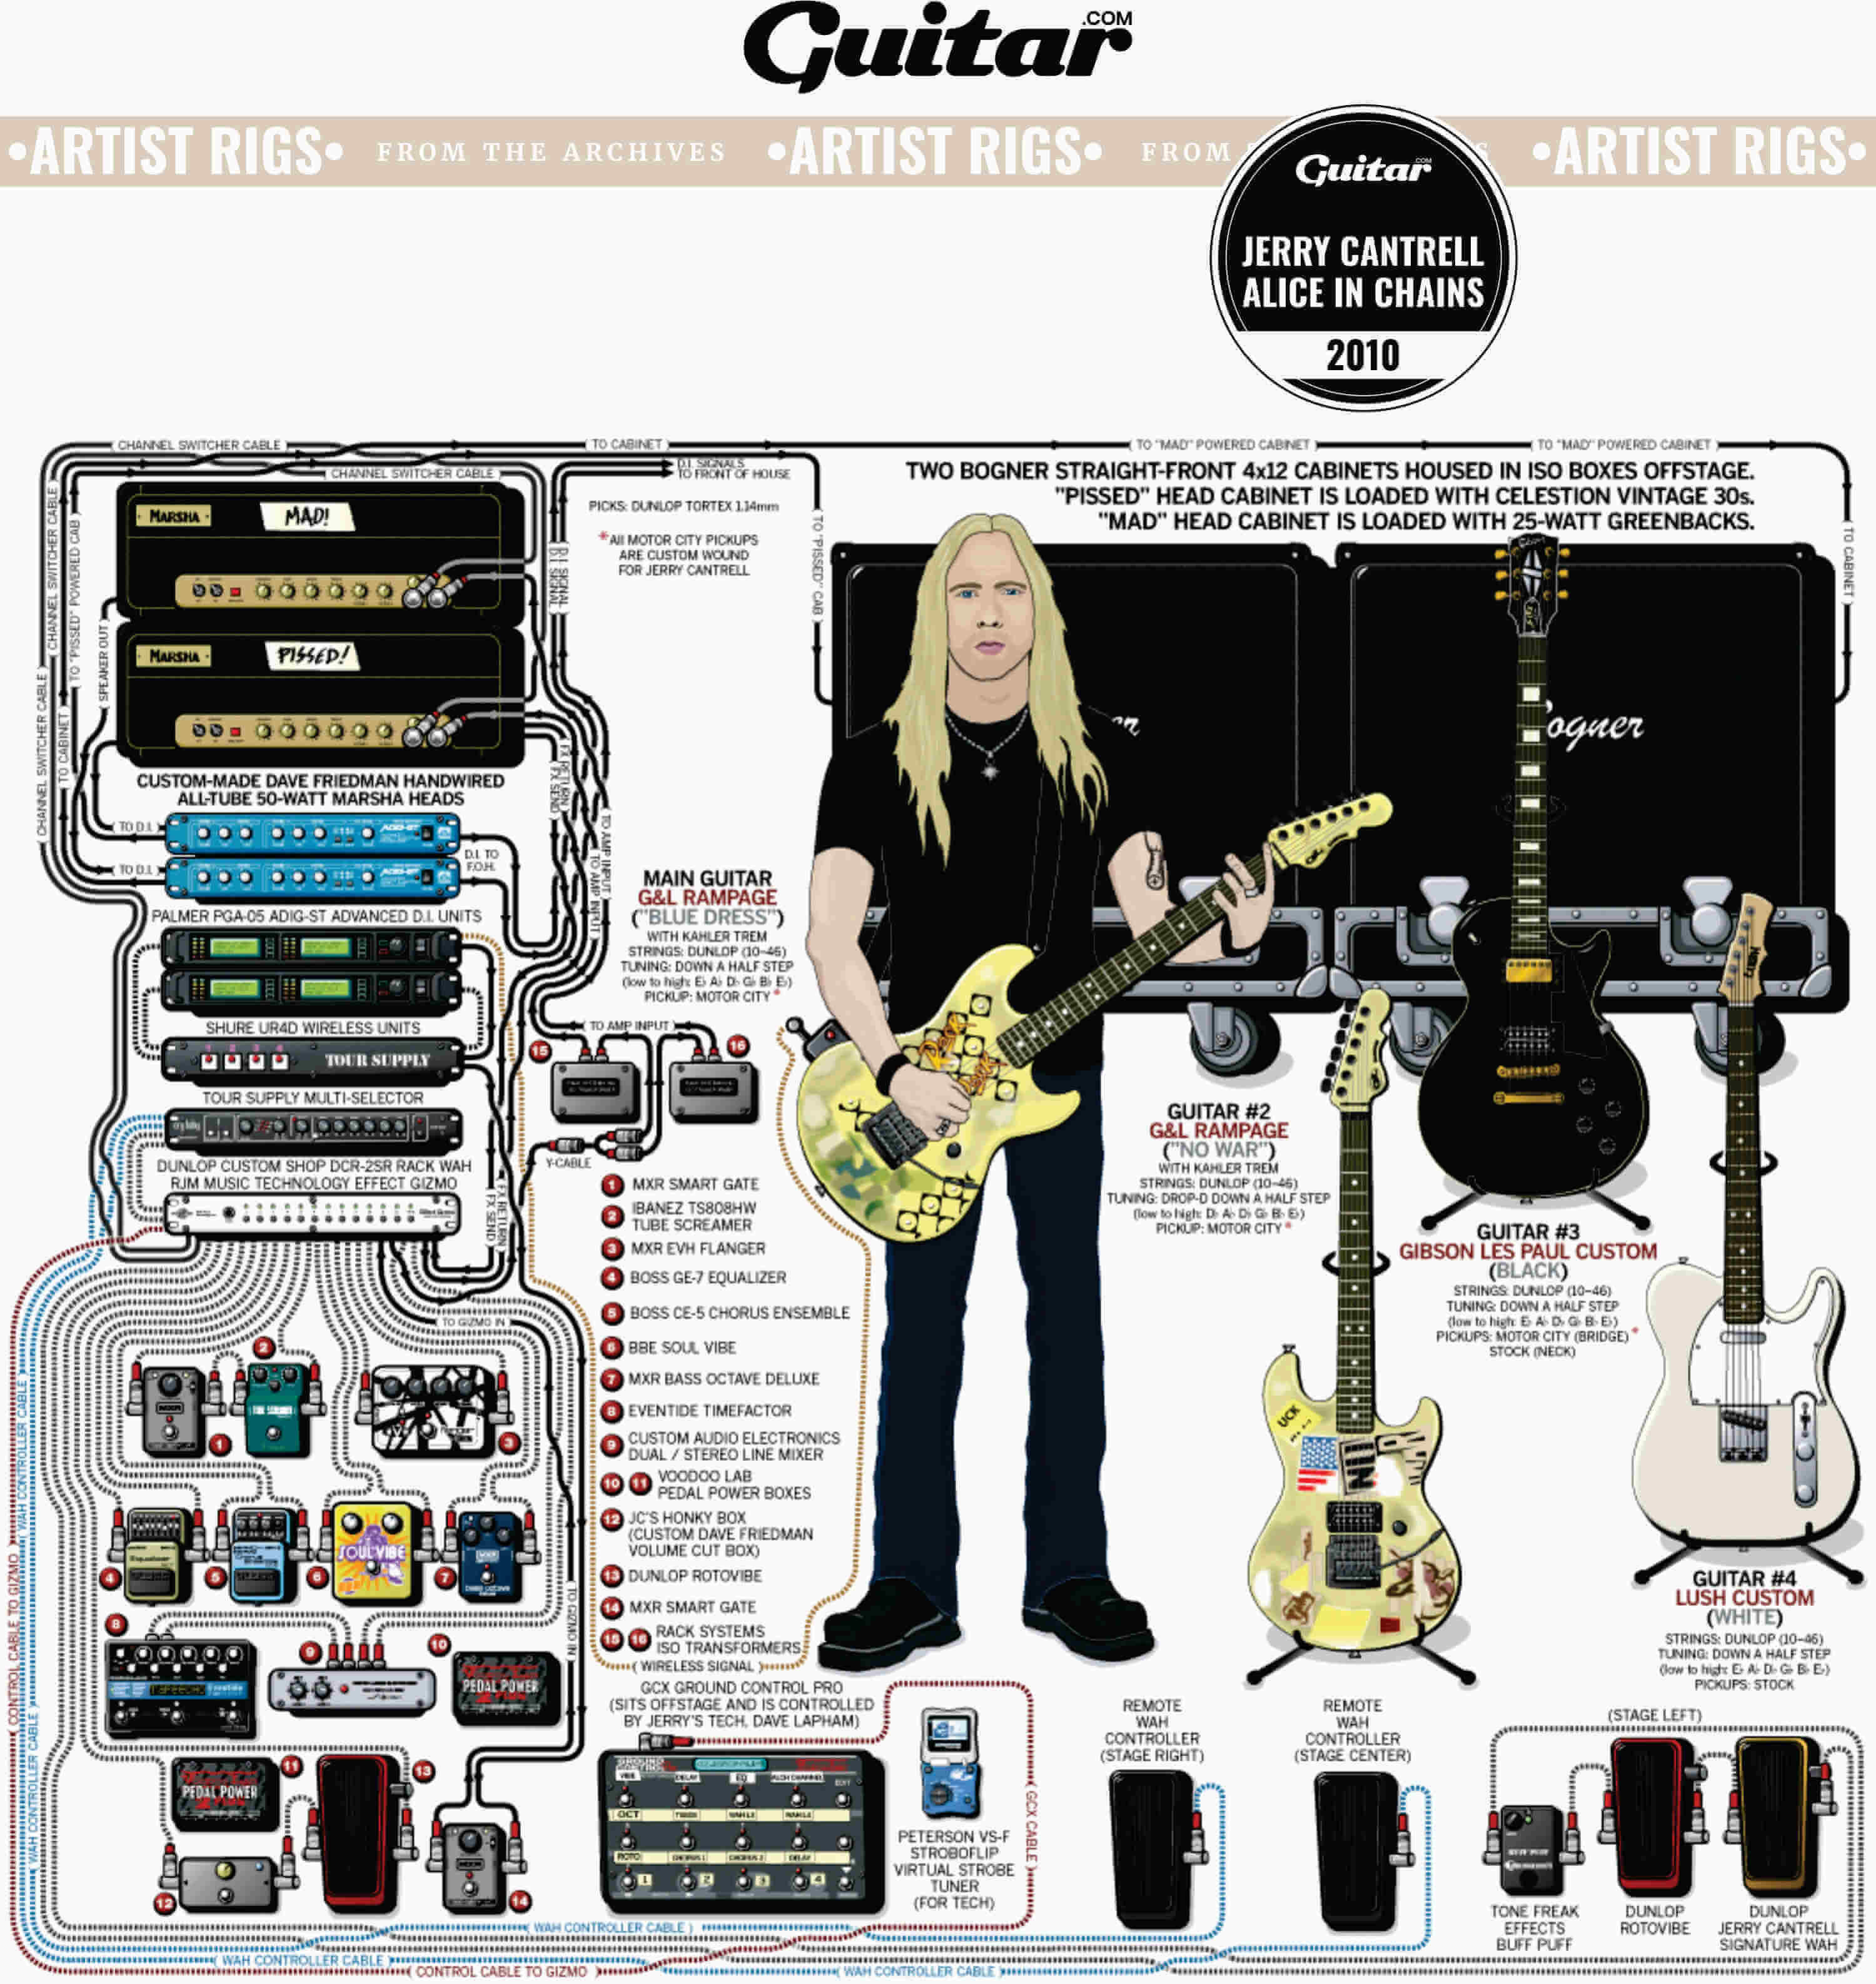 Rig Diagram: Jerry Cantrell, Alice In Chains (2010)